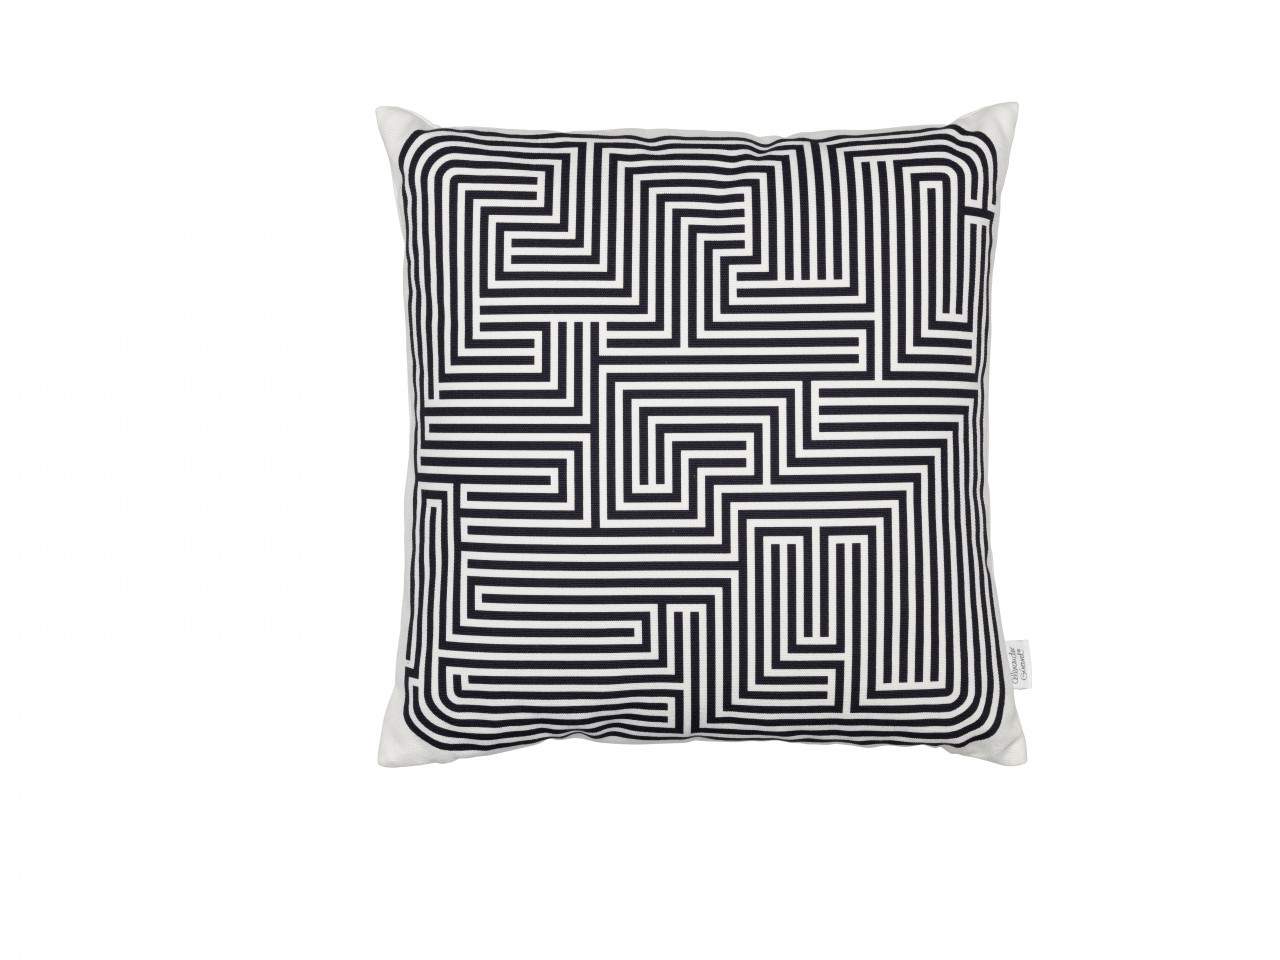 Graphic Print Pillows: Maze, black